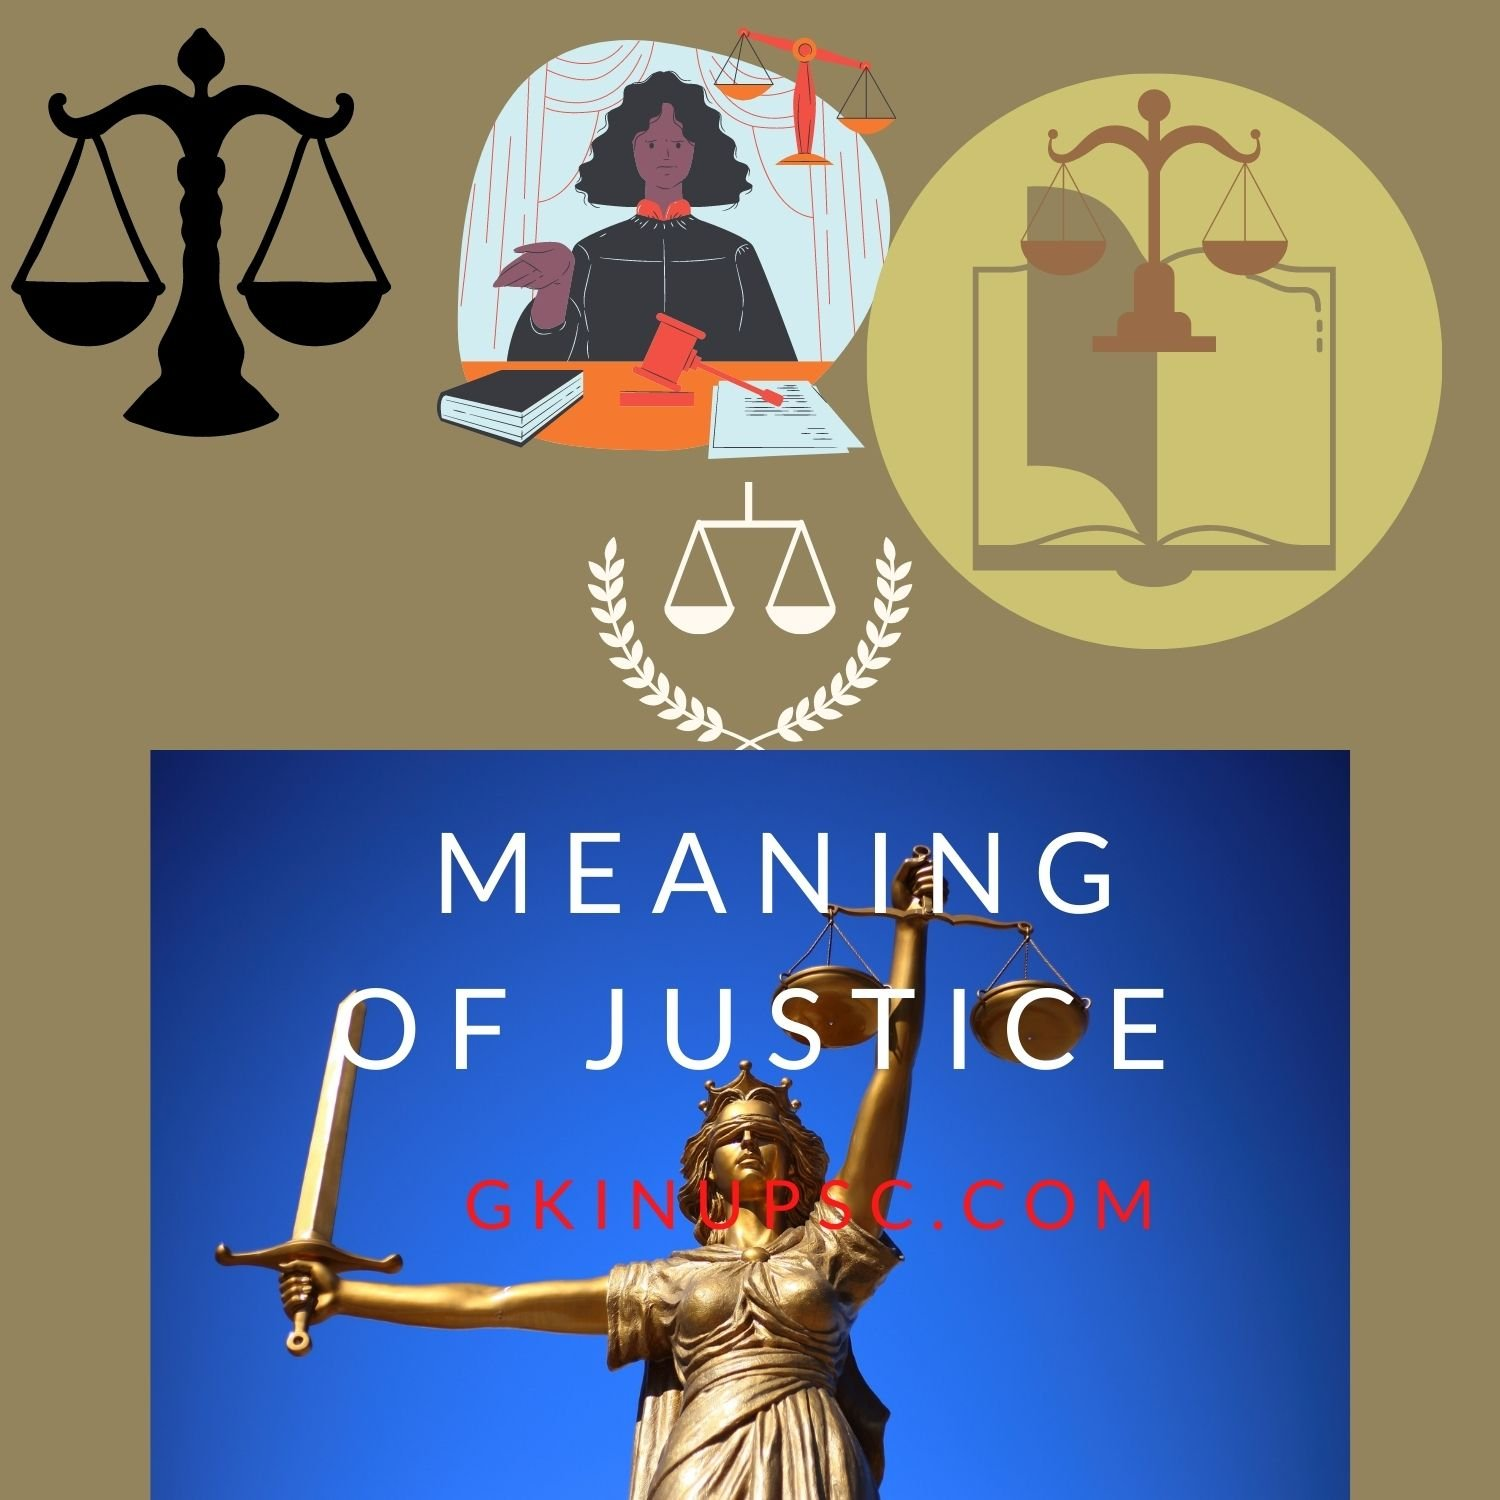 Meaning of justice